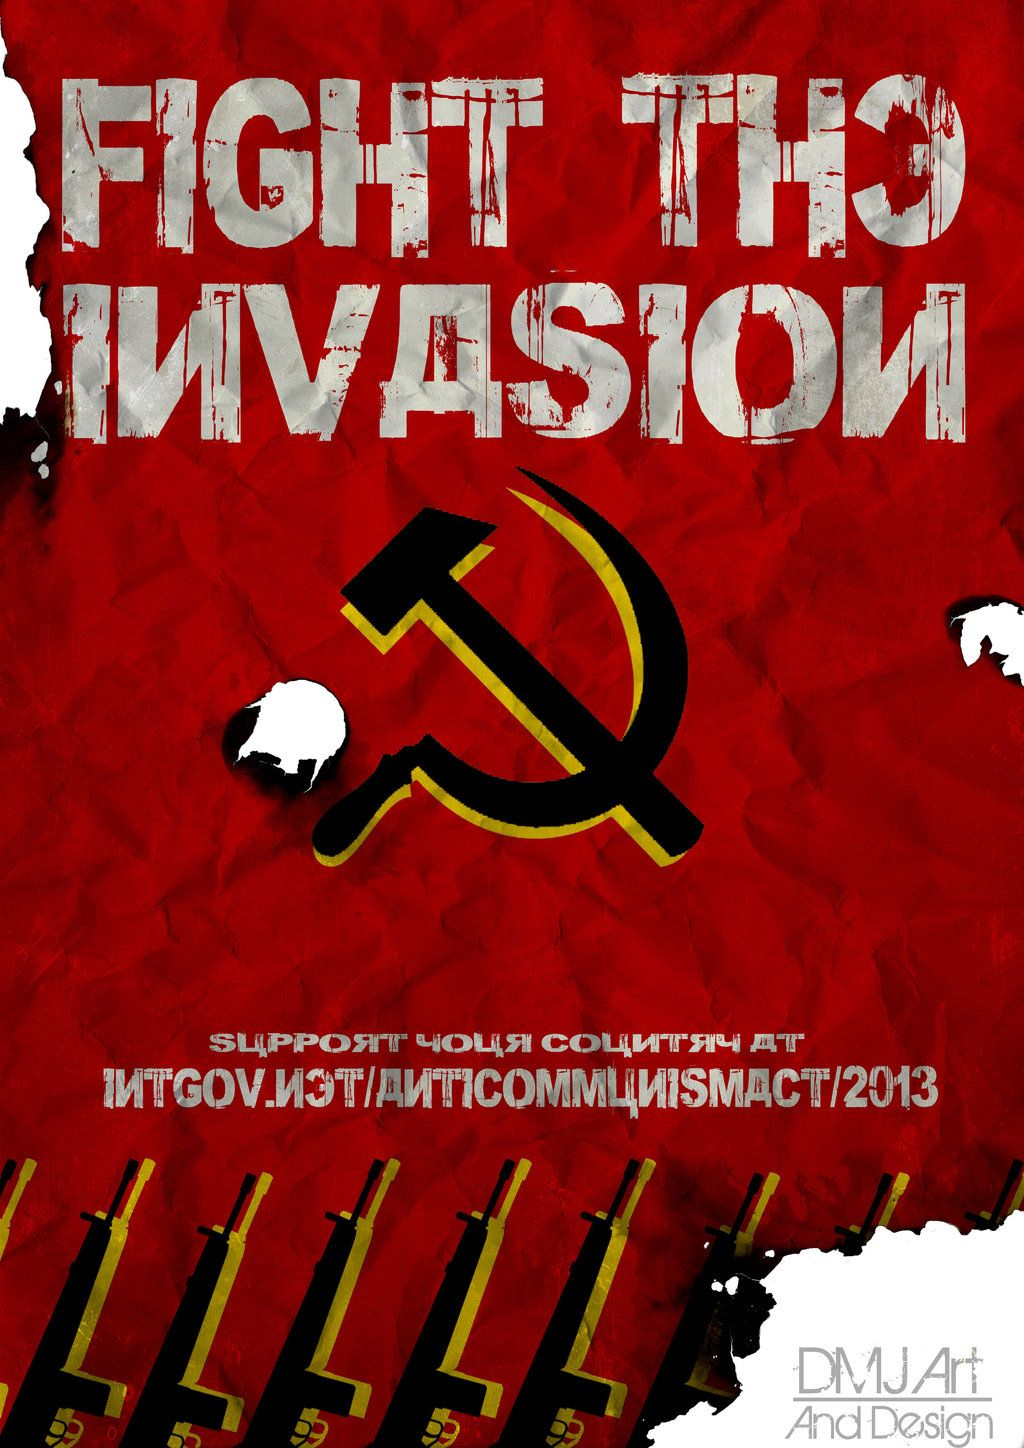 Anti Communism Poster By Chemical5 Deviantart Com On Deviantart Anti Communism Political Posters Poster